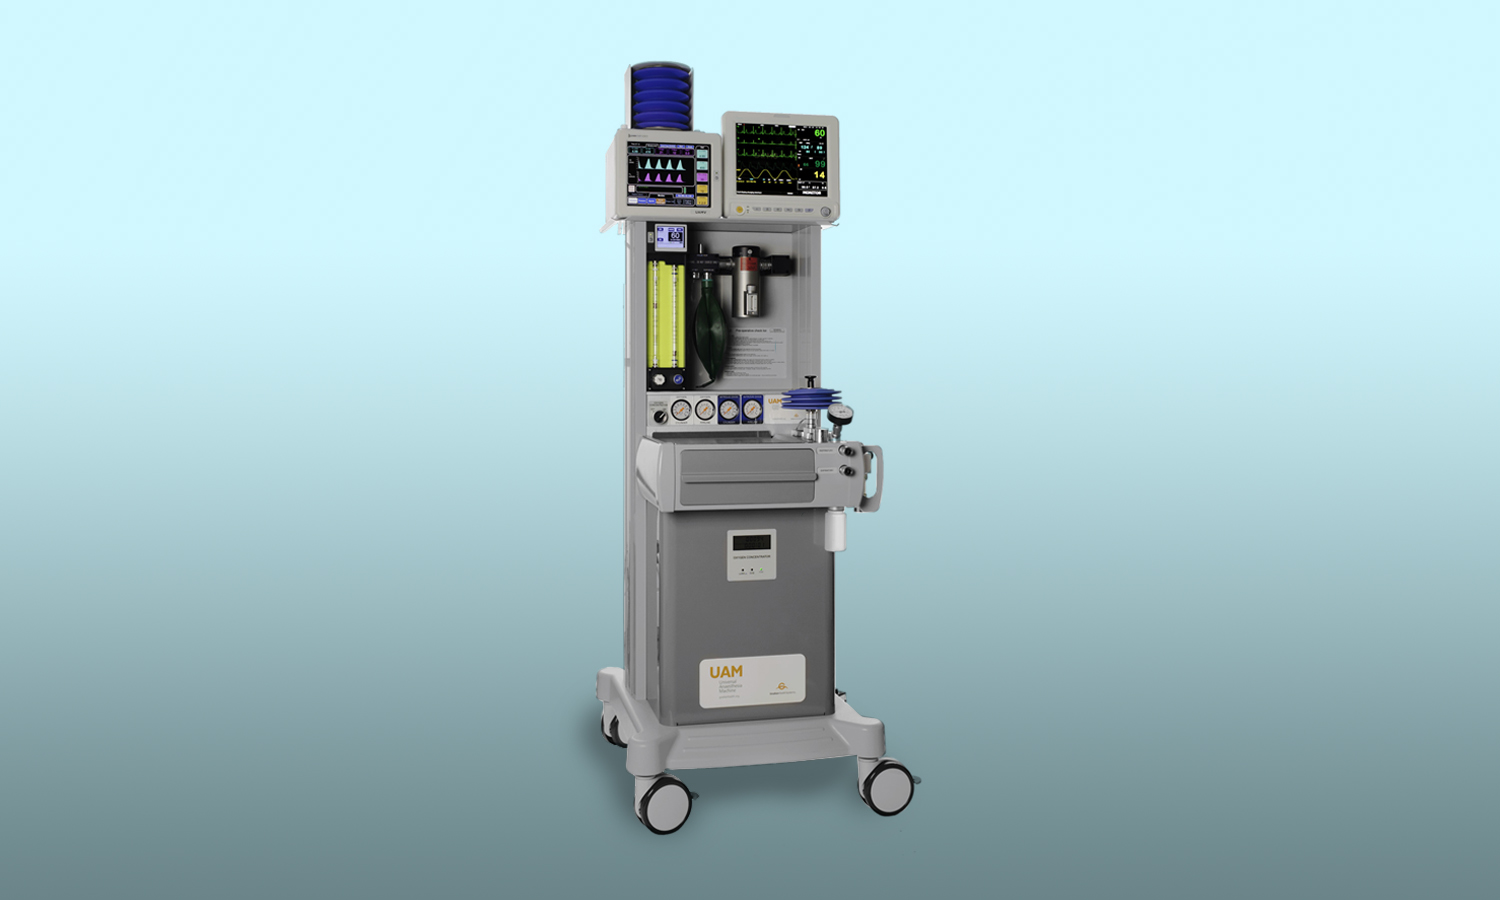 The Universal Anaesthesia Machine (UAM) is the world's first CE-certified anesthesia machine designed to work without electricity and medical oxygen. With a built-in oxygen concentrator, standard connections for other oxygen sources, and key features on battery backup, the UAM uses a combination of continuous-flow and draw-over technologies to deliver general anesthesia safely in any setting.